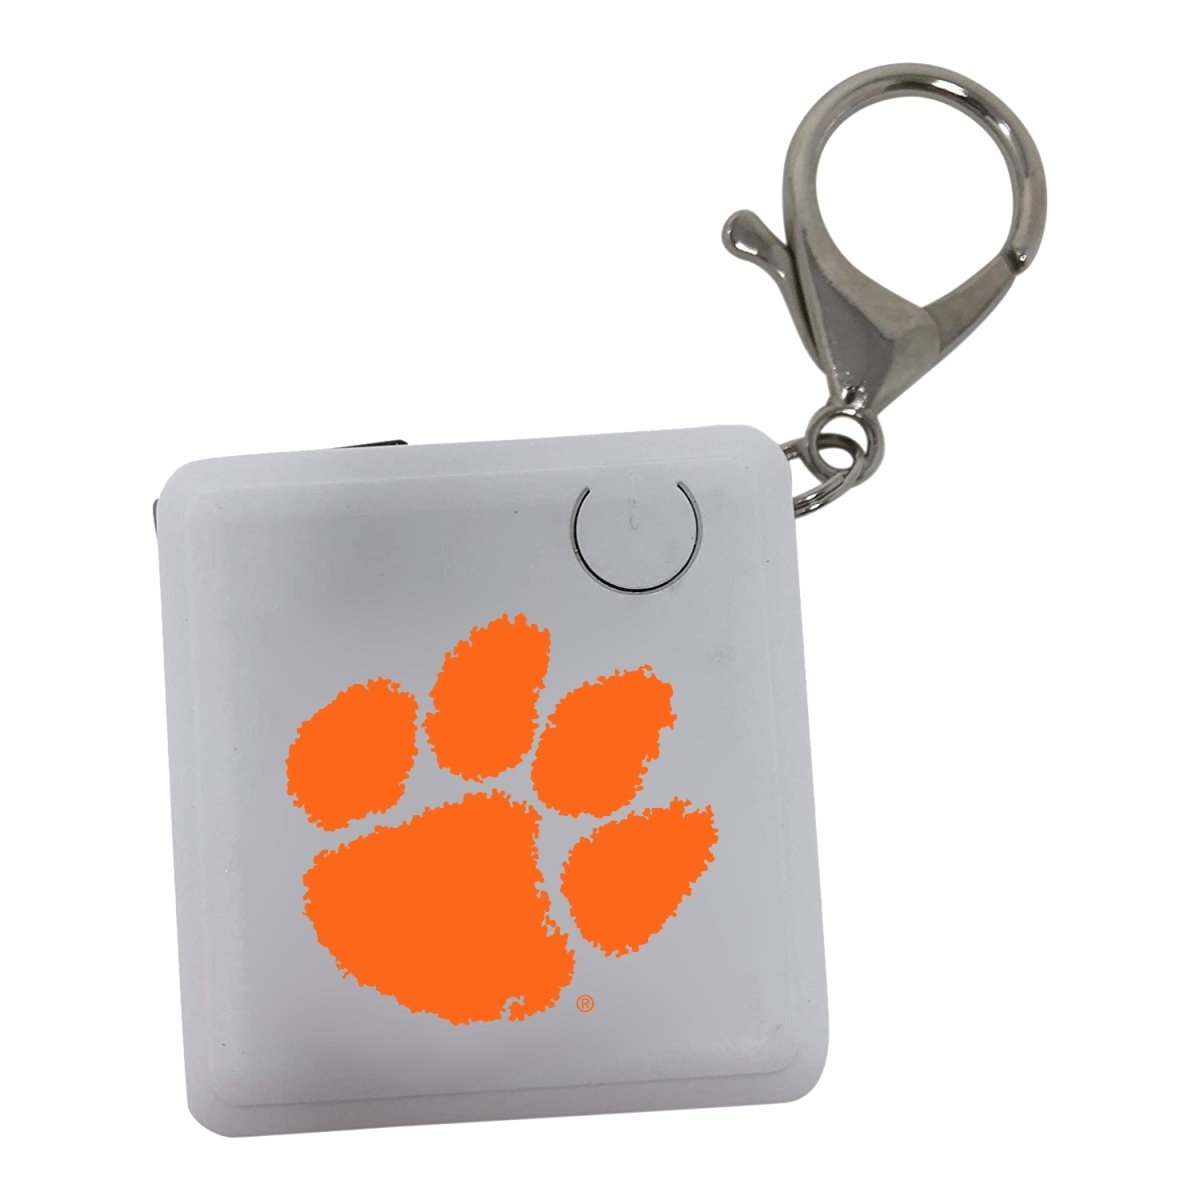 Key Tag Charger 1200mah, White With Orange Paw - Mr. Knickerbocker